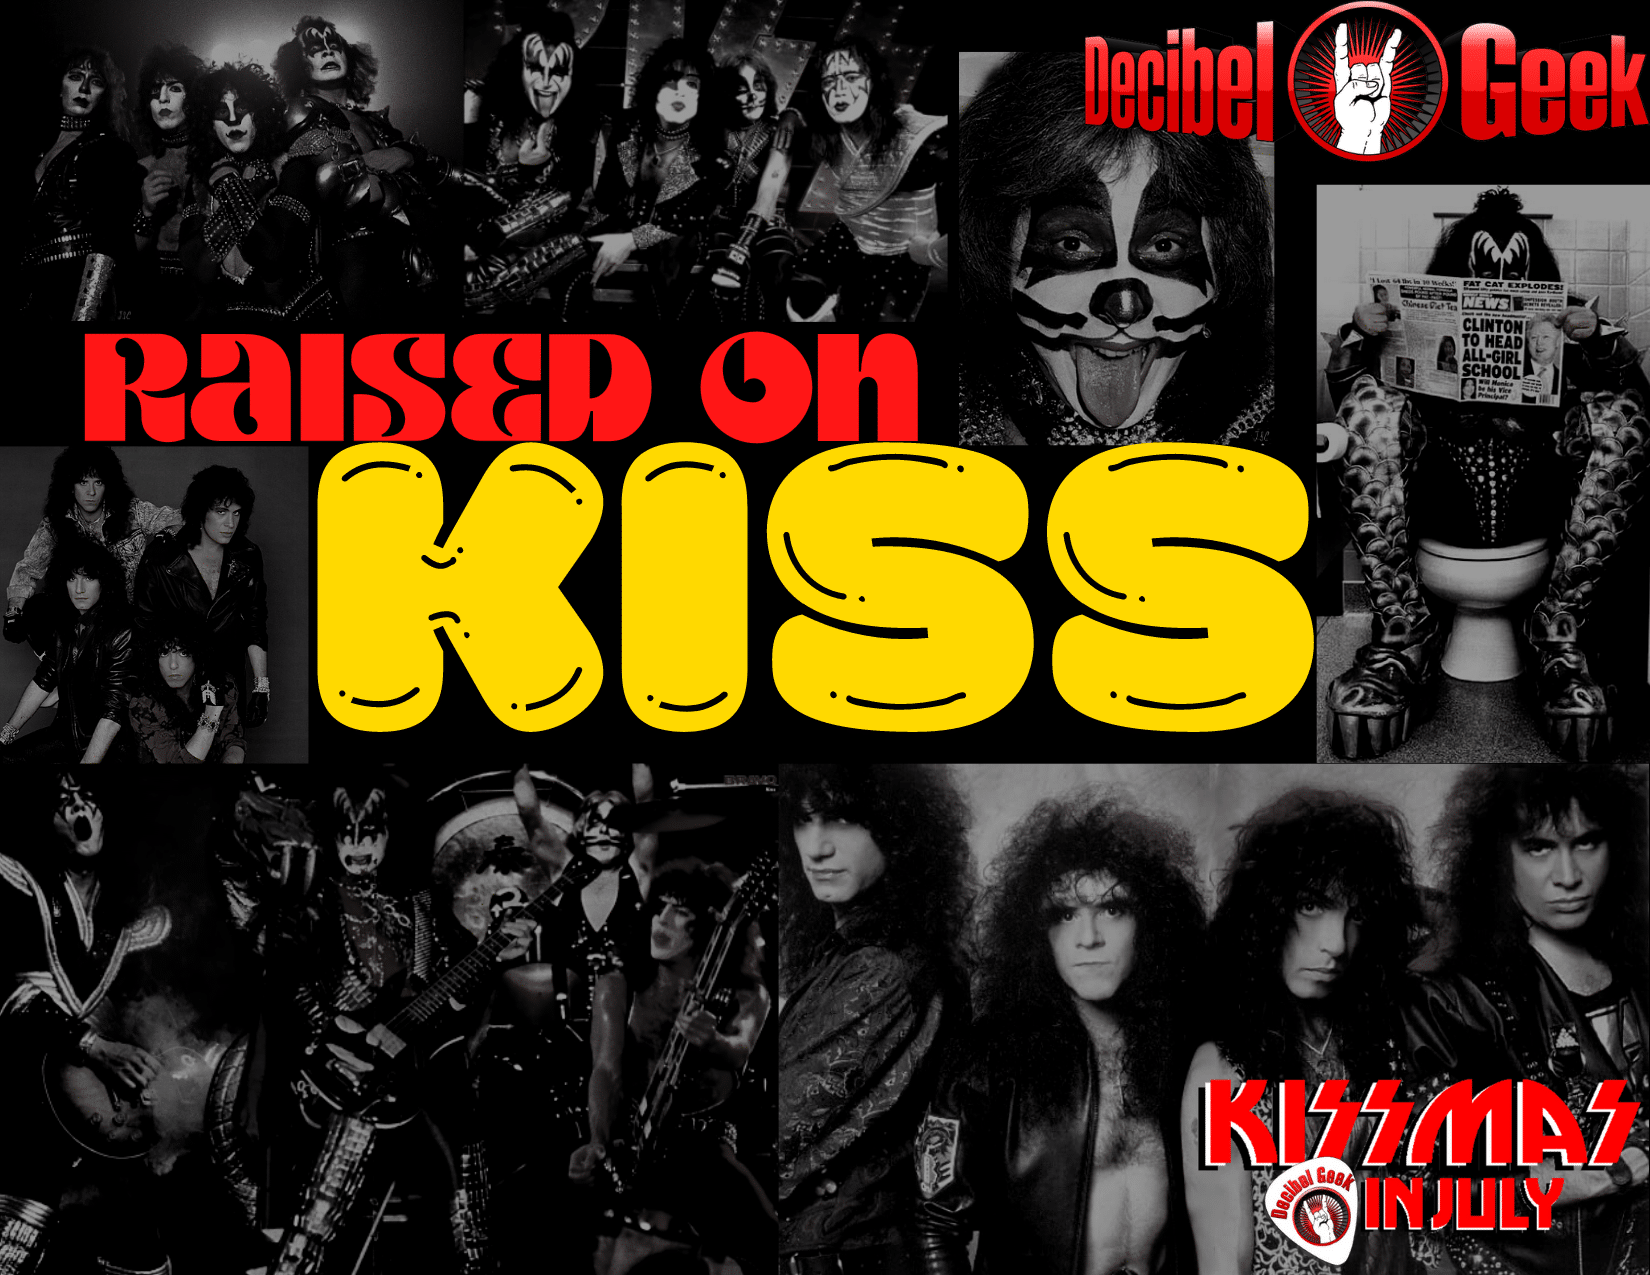 kiss gene simmons paul stanley ace frehley peter criss